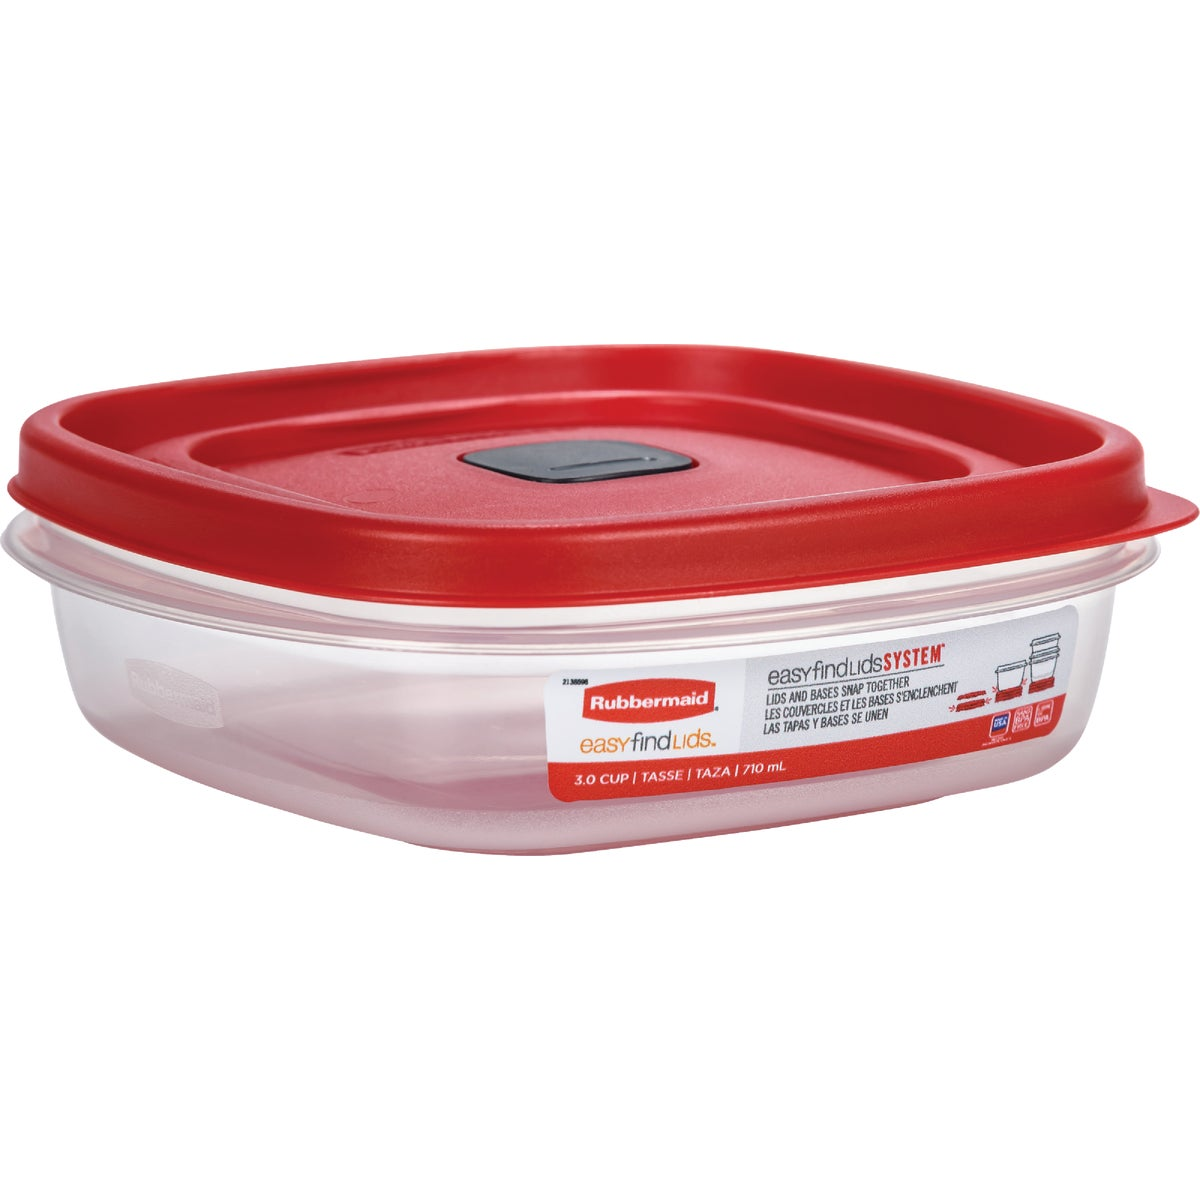 3 CUP FOOD CONTAINER - 1777086 by Rubbermaid Home